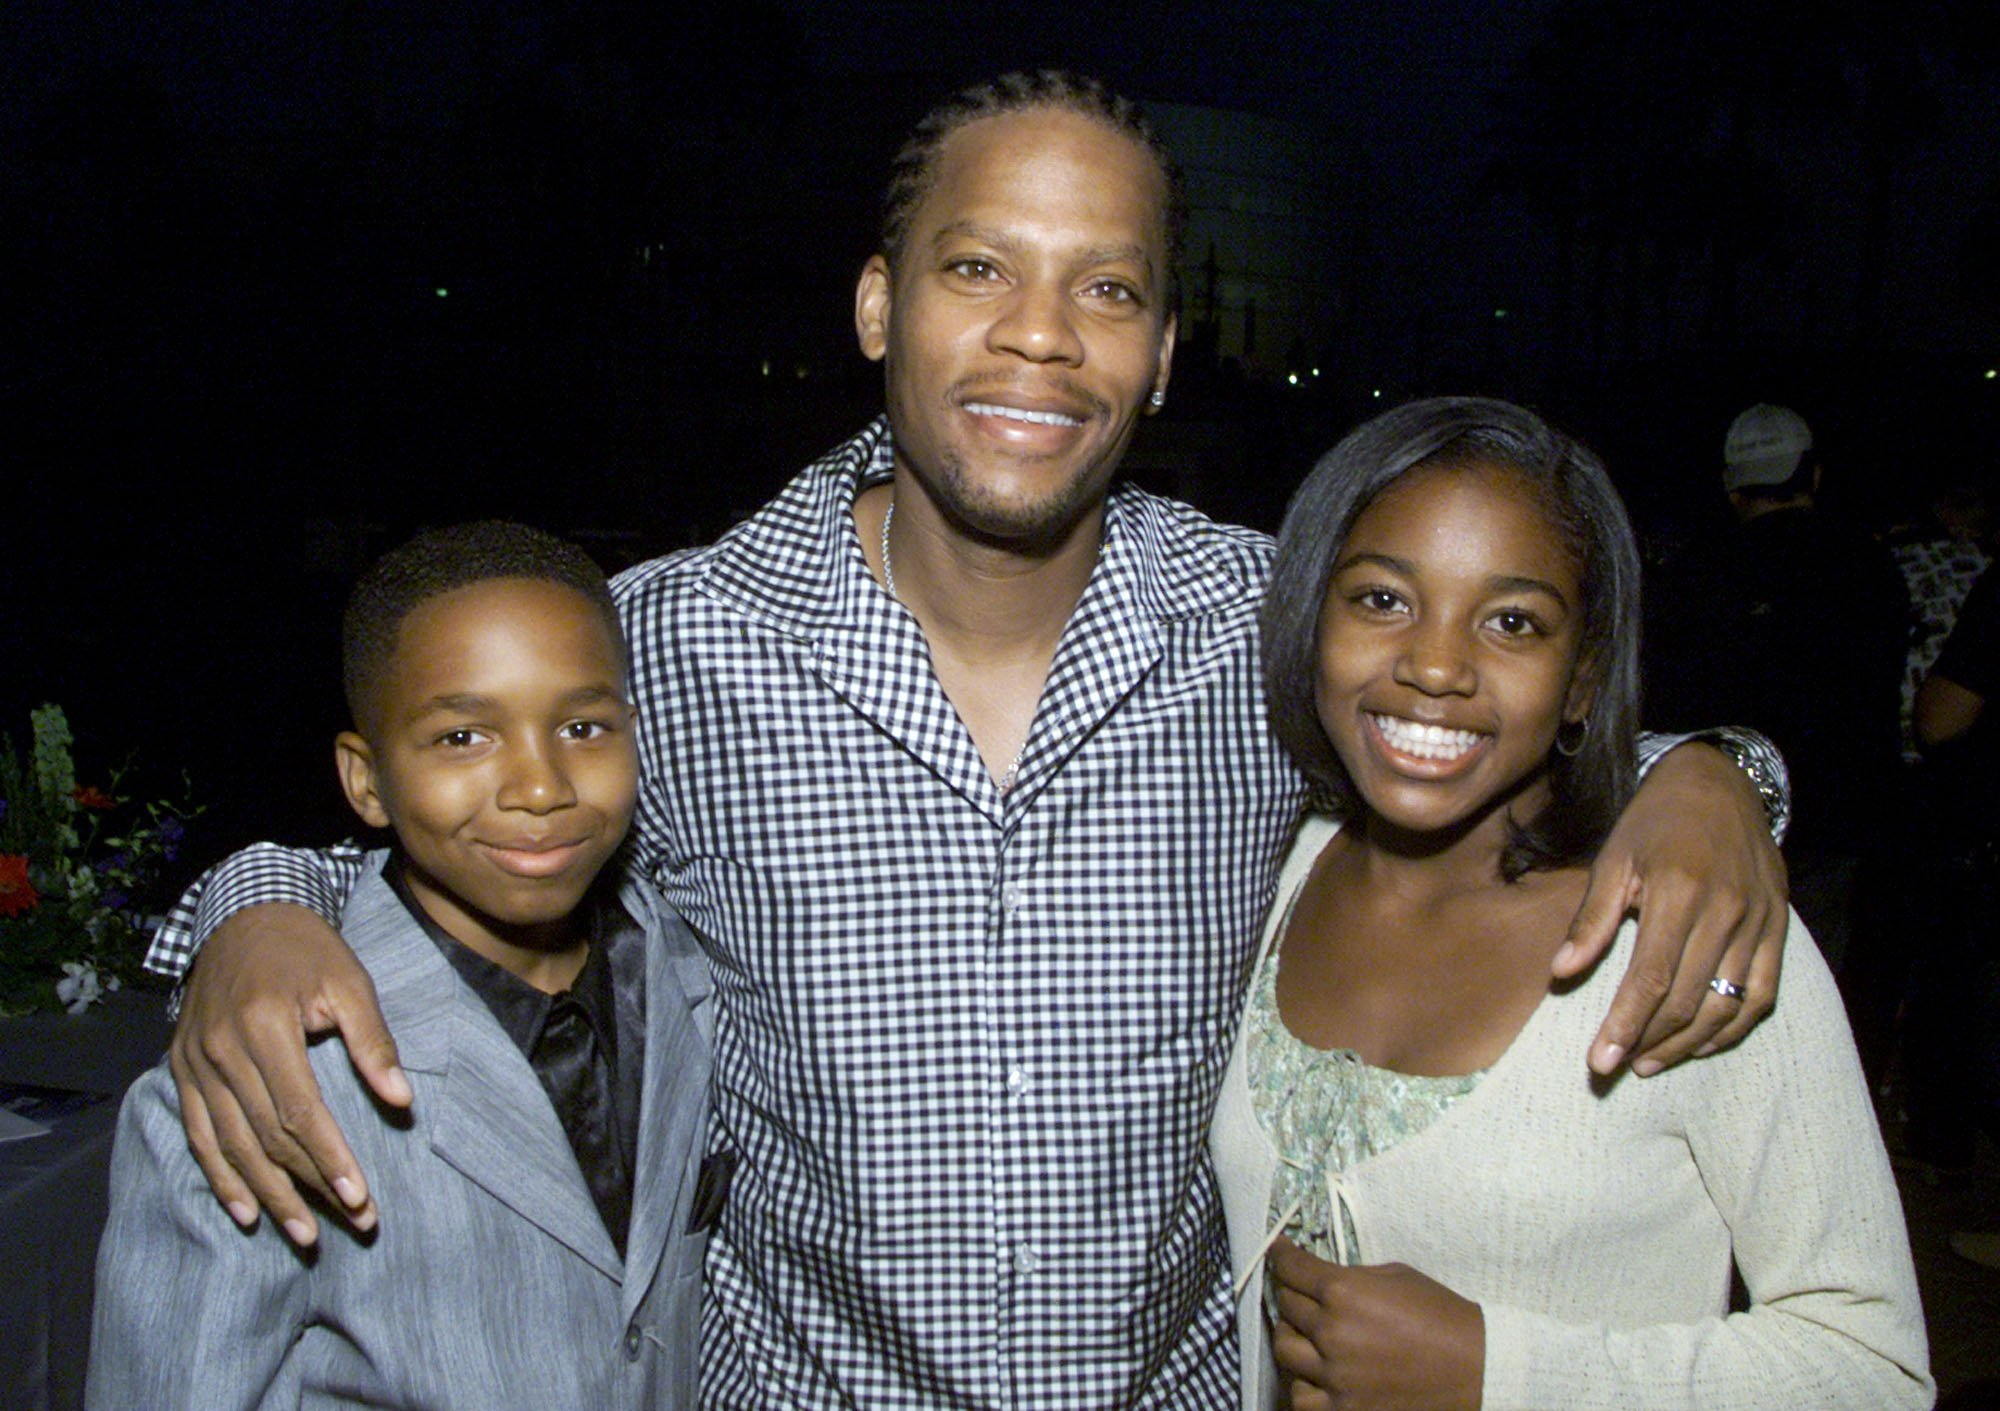 """Stars of """"The Hughleys,"""" Dee Jay Daniels, D.L. Hughley and Ashley Monique Clark at UPN's summer tour party for the Television Critics Association at Paramount Studios in Los Angeles, Ca. on July 16, 2001. 